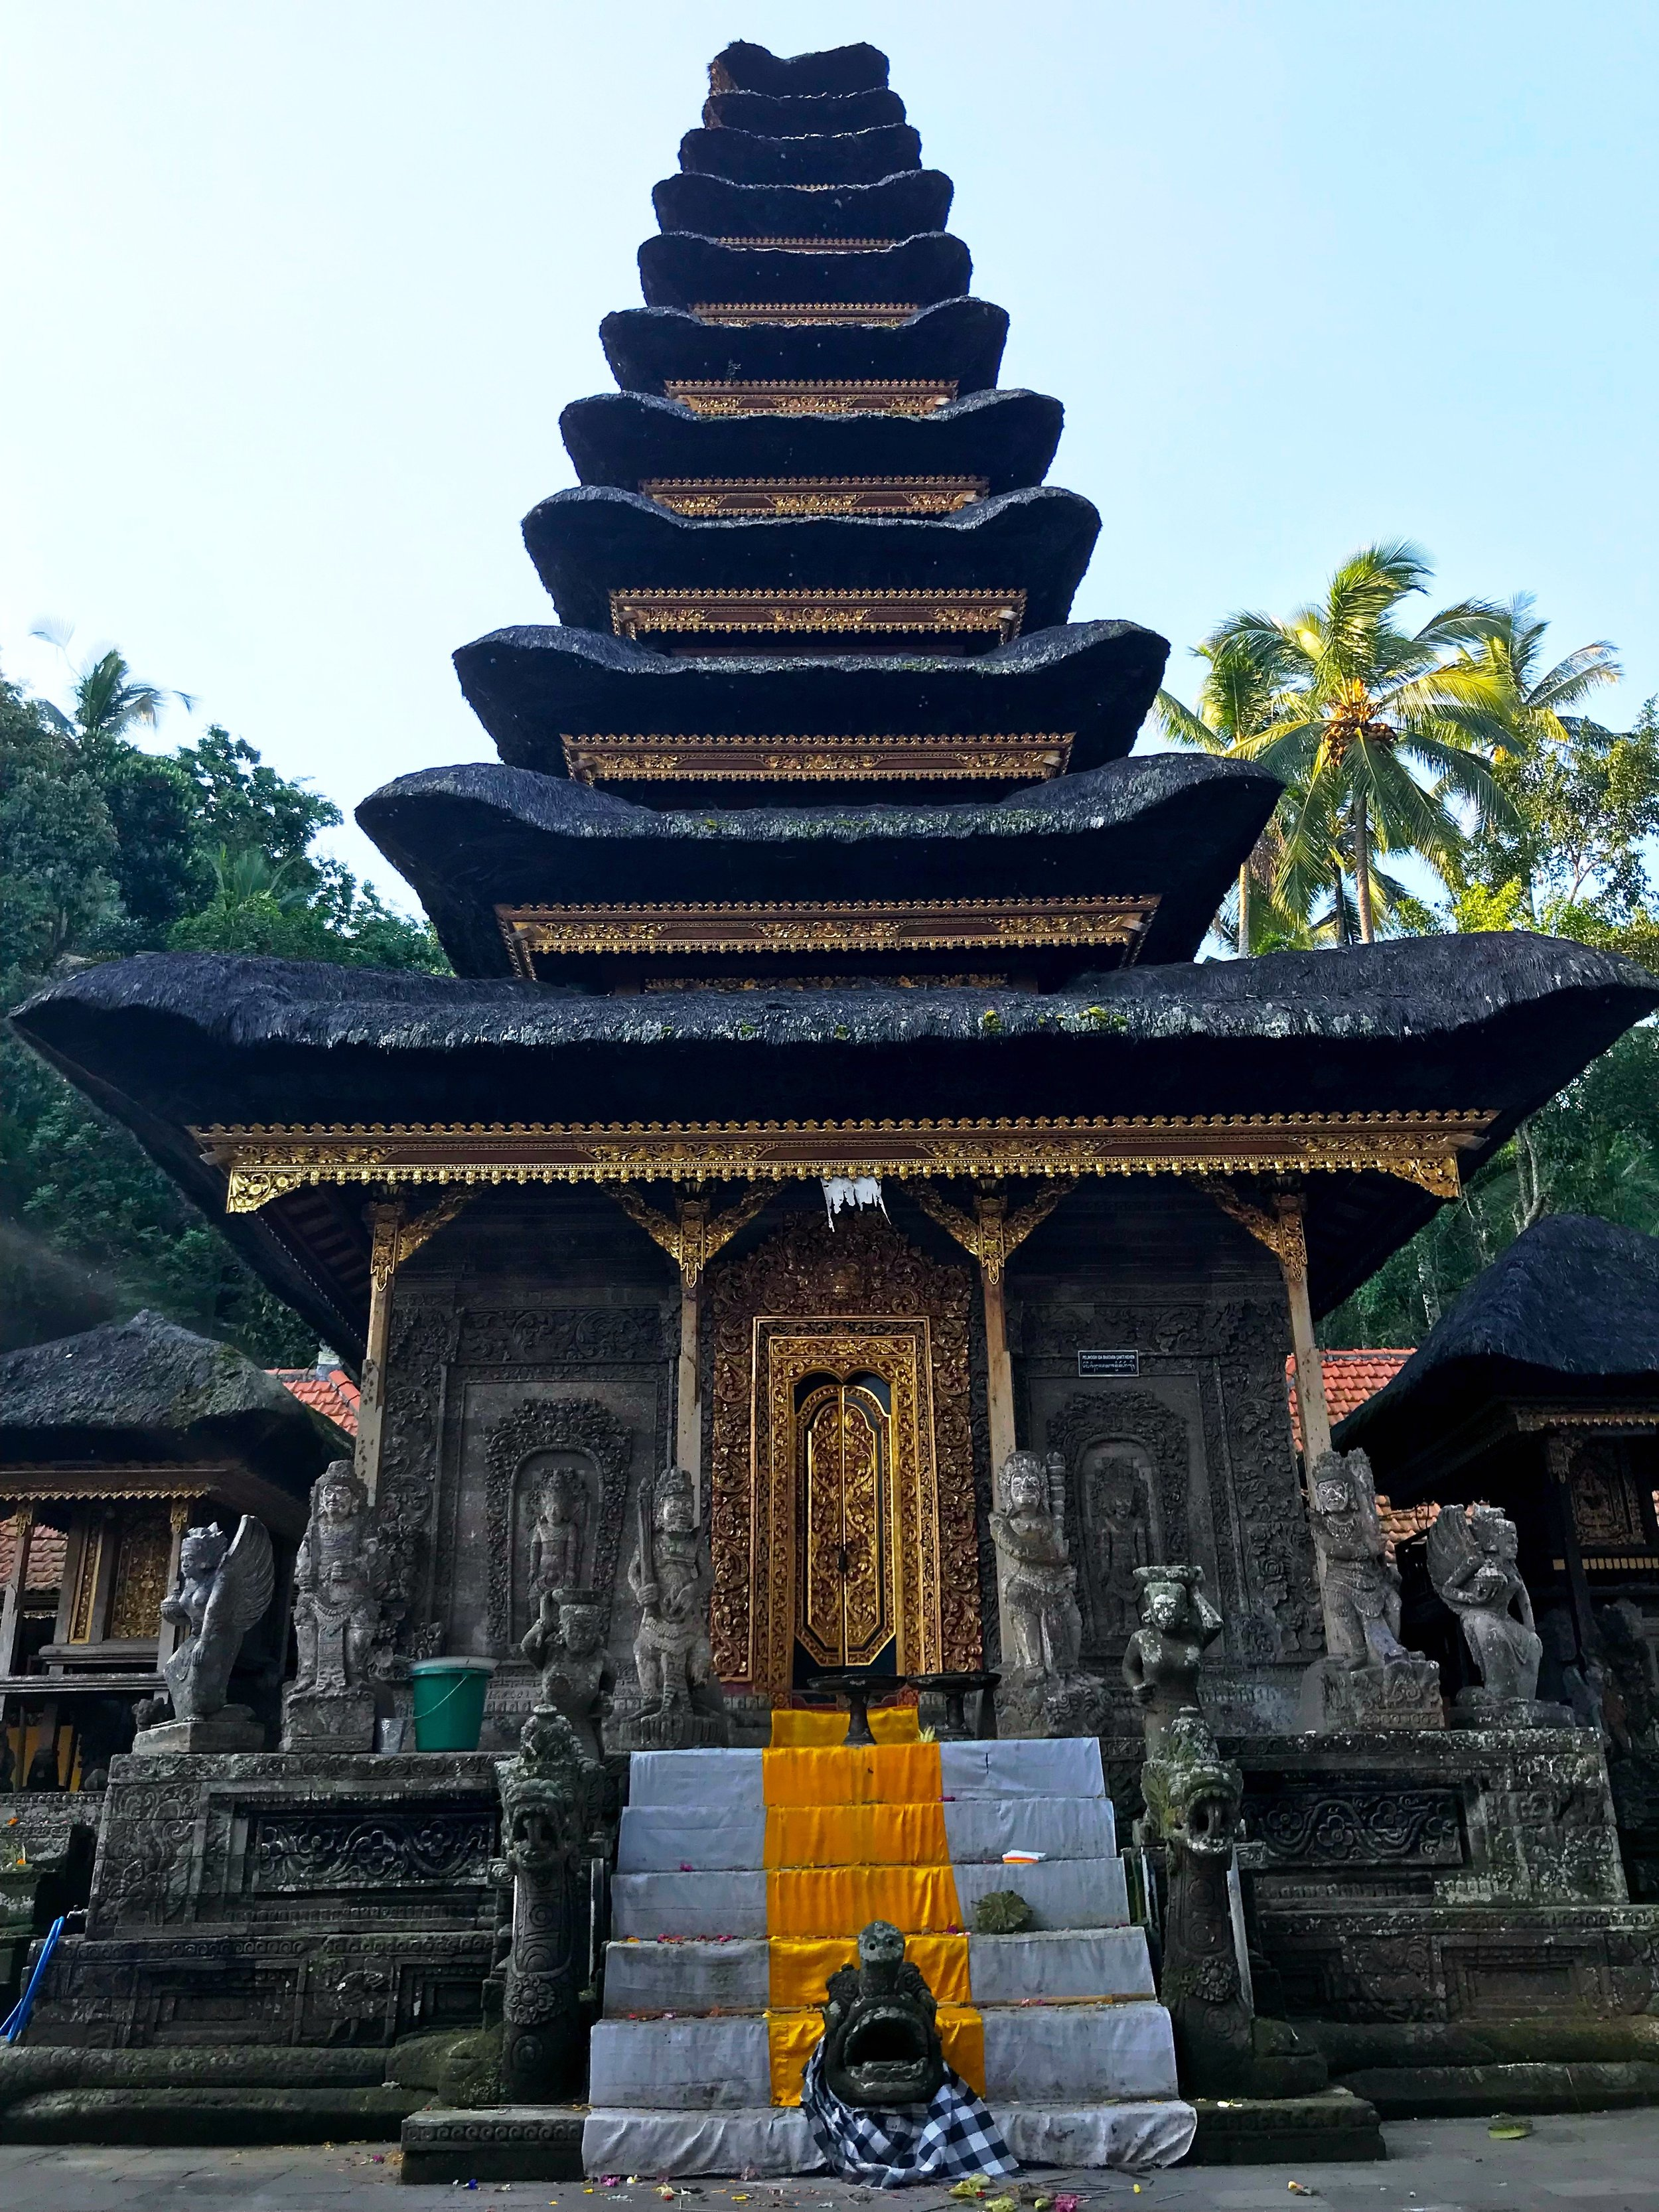 The taller the Meru, the more significant the deity